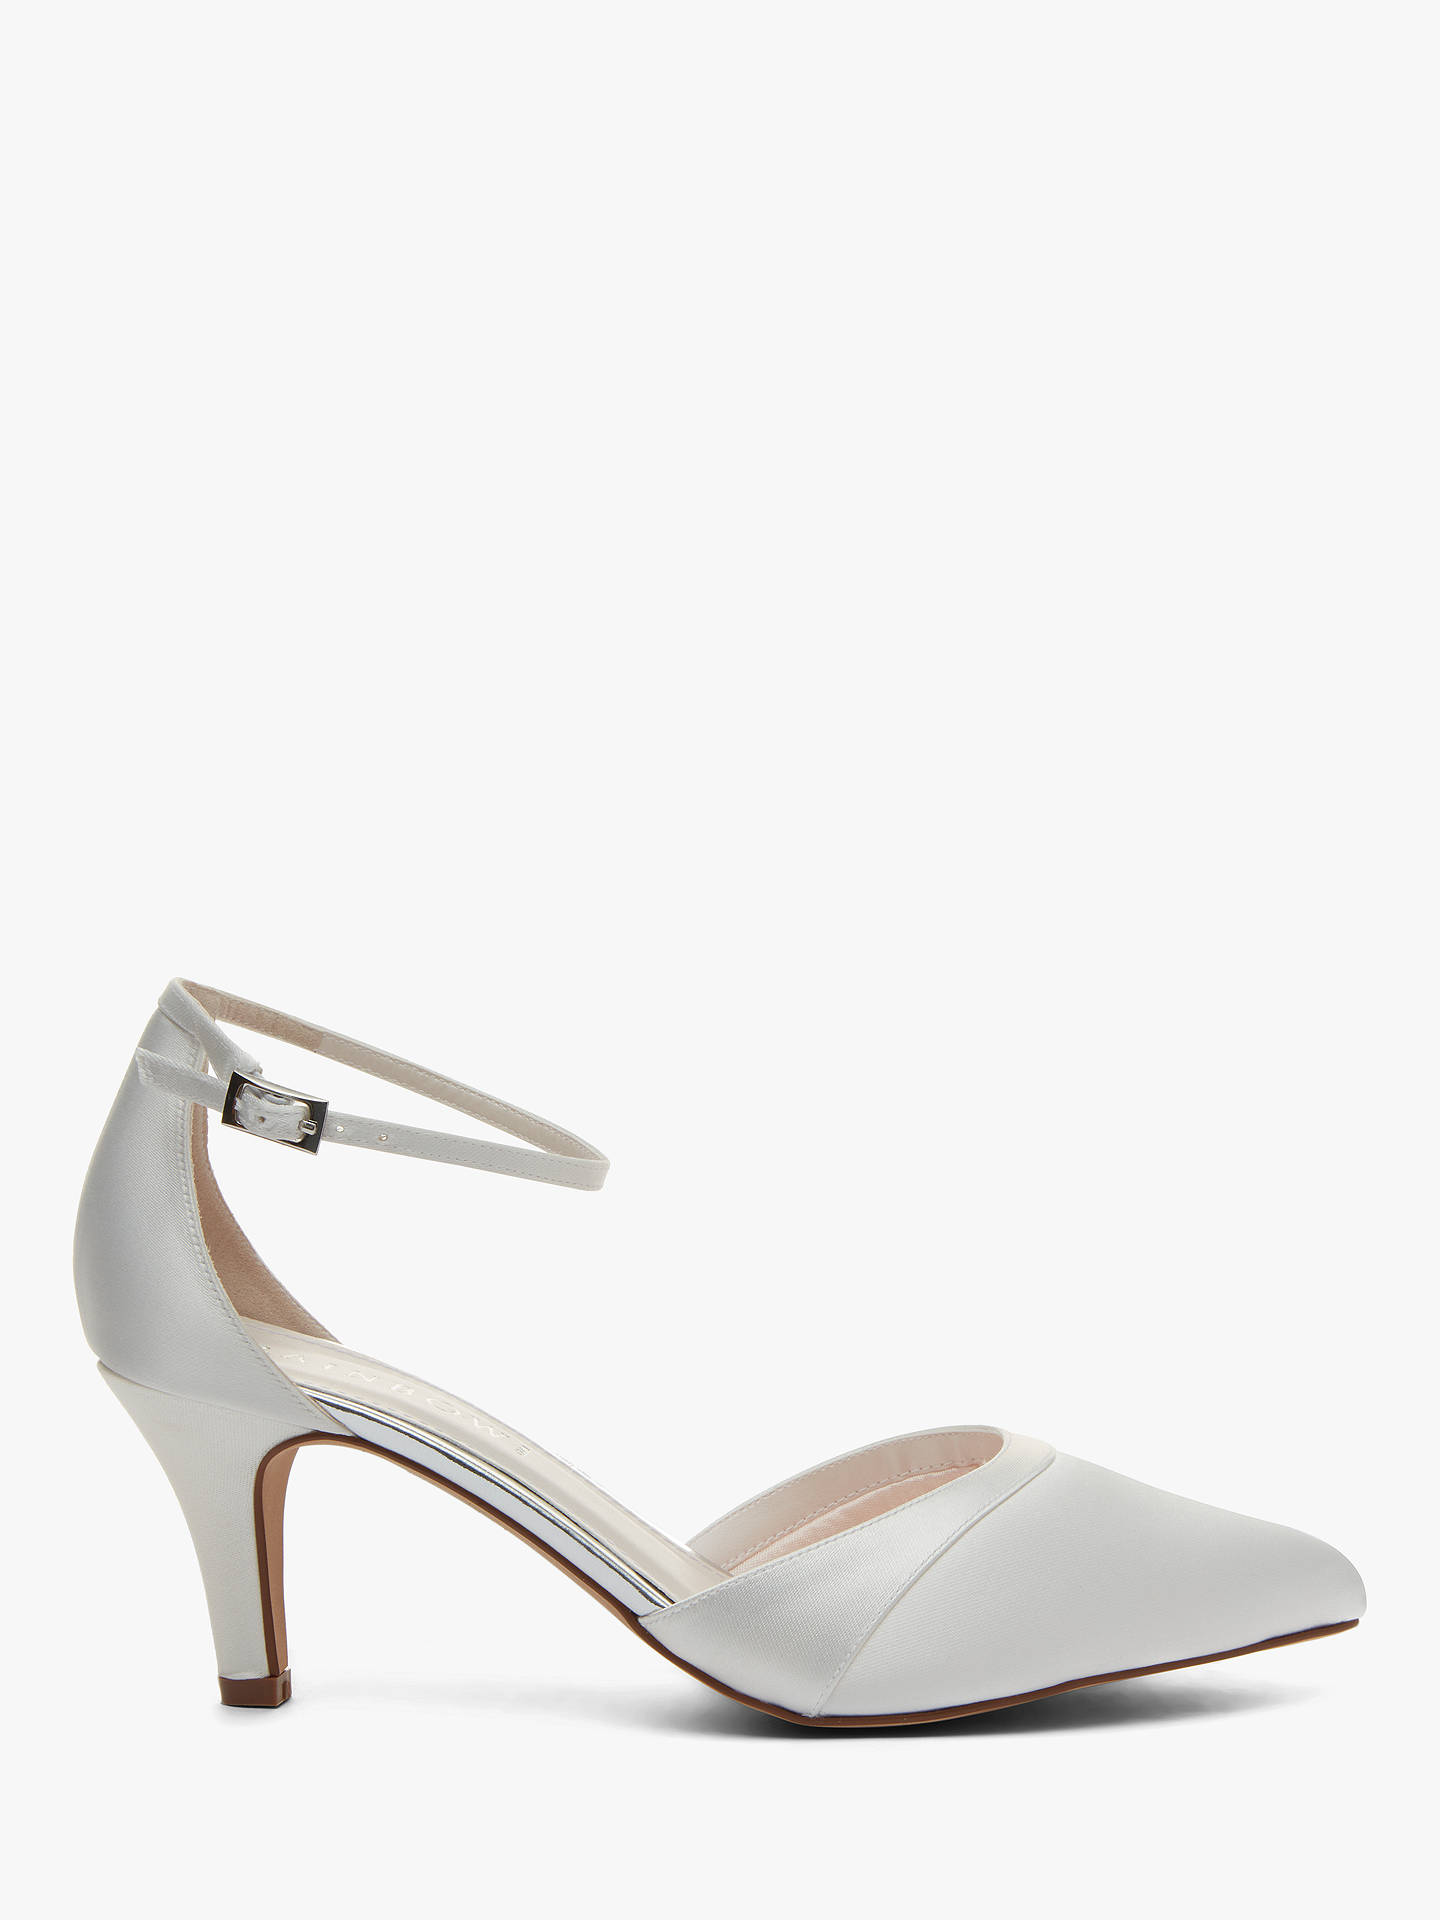 Rainbow Club Harper Satin Pointed Court Shoes Ivory At John Lewis